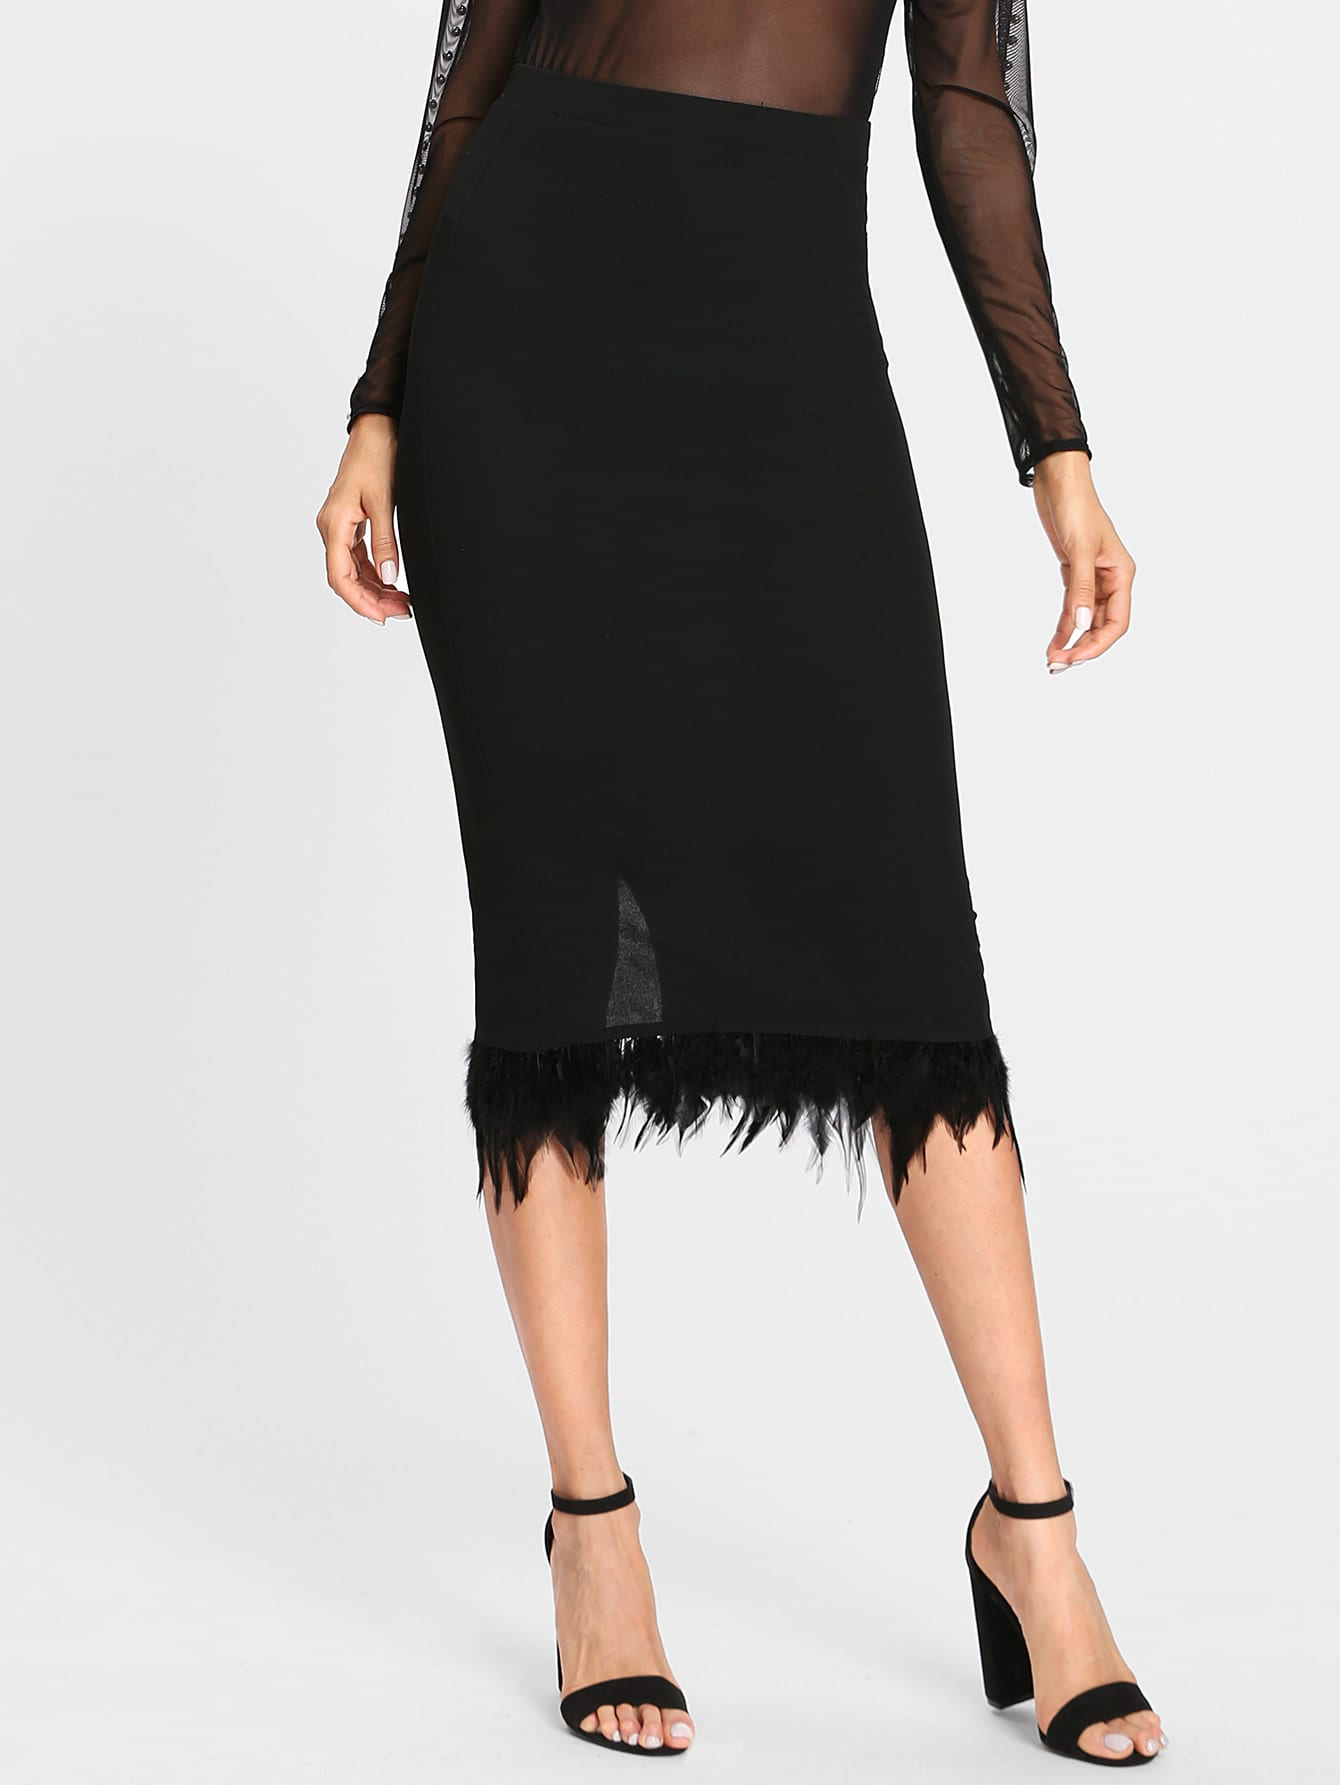 Slit Back Contrast Feather Pencil Skirt slit back pencil skirt with strap page 9